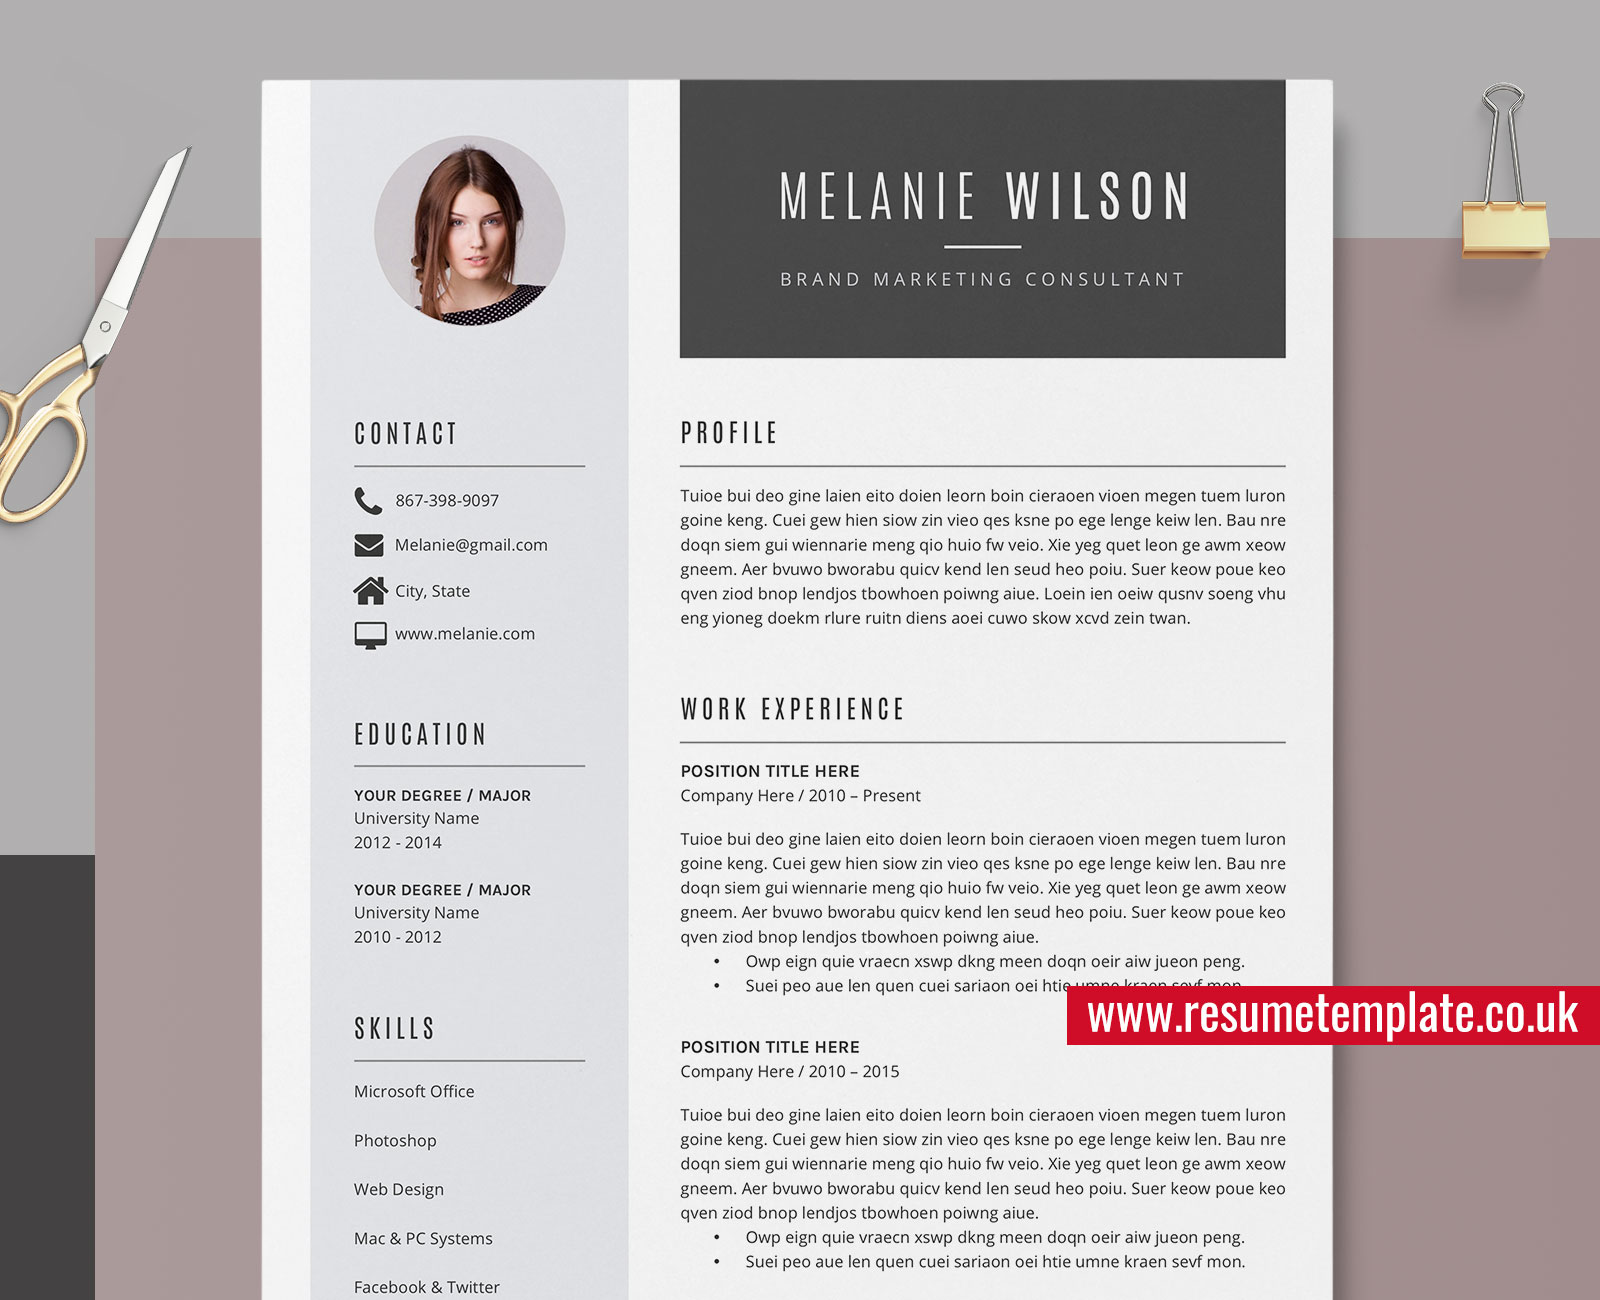 modern resume template word cv sample design fully editable cover letter and references Resume Microsoft Office Resume Templates 2021